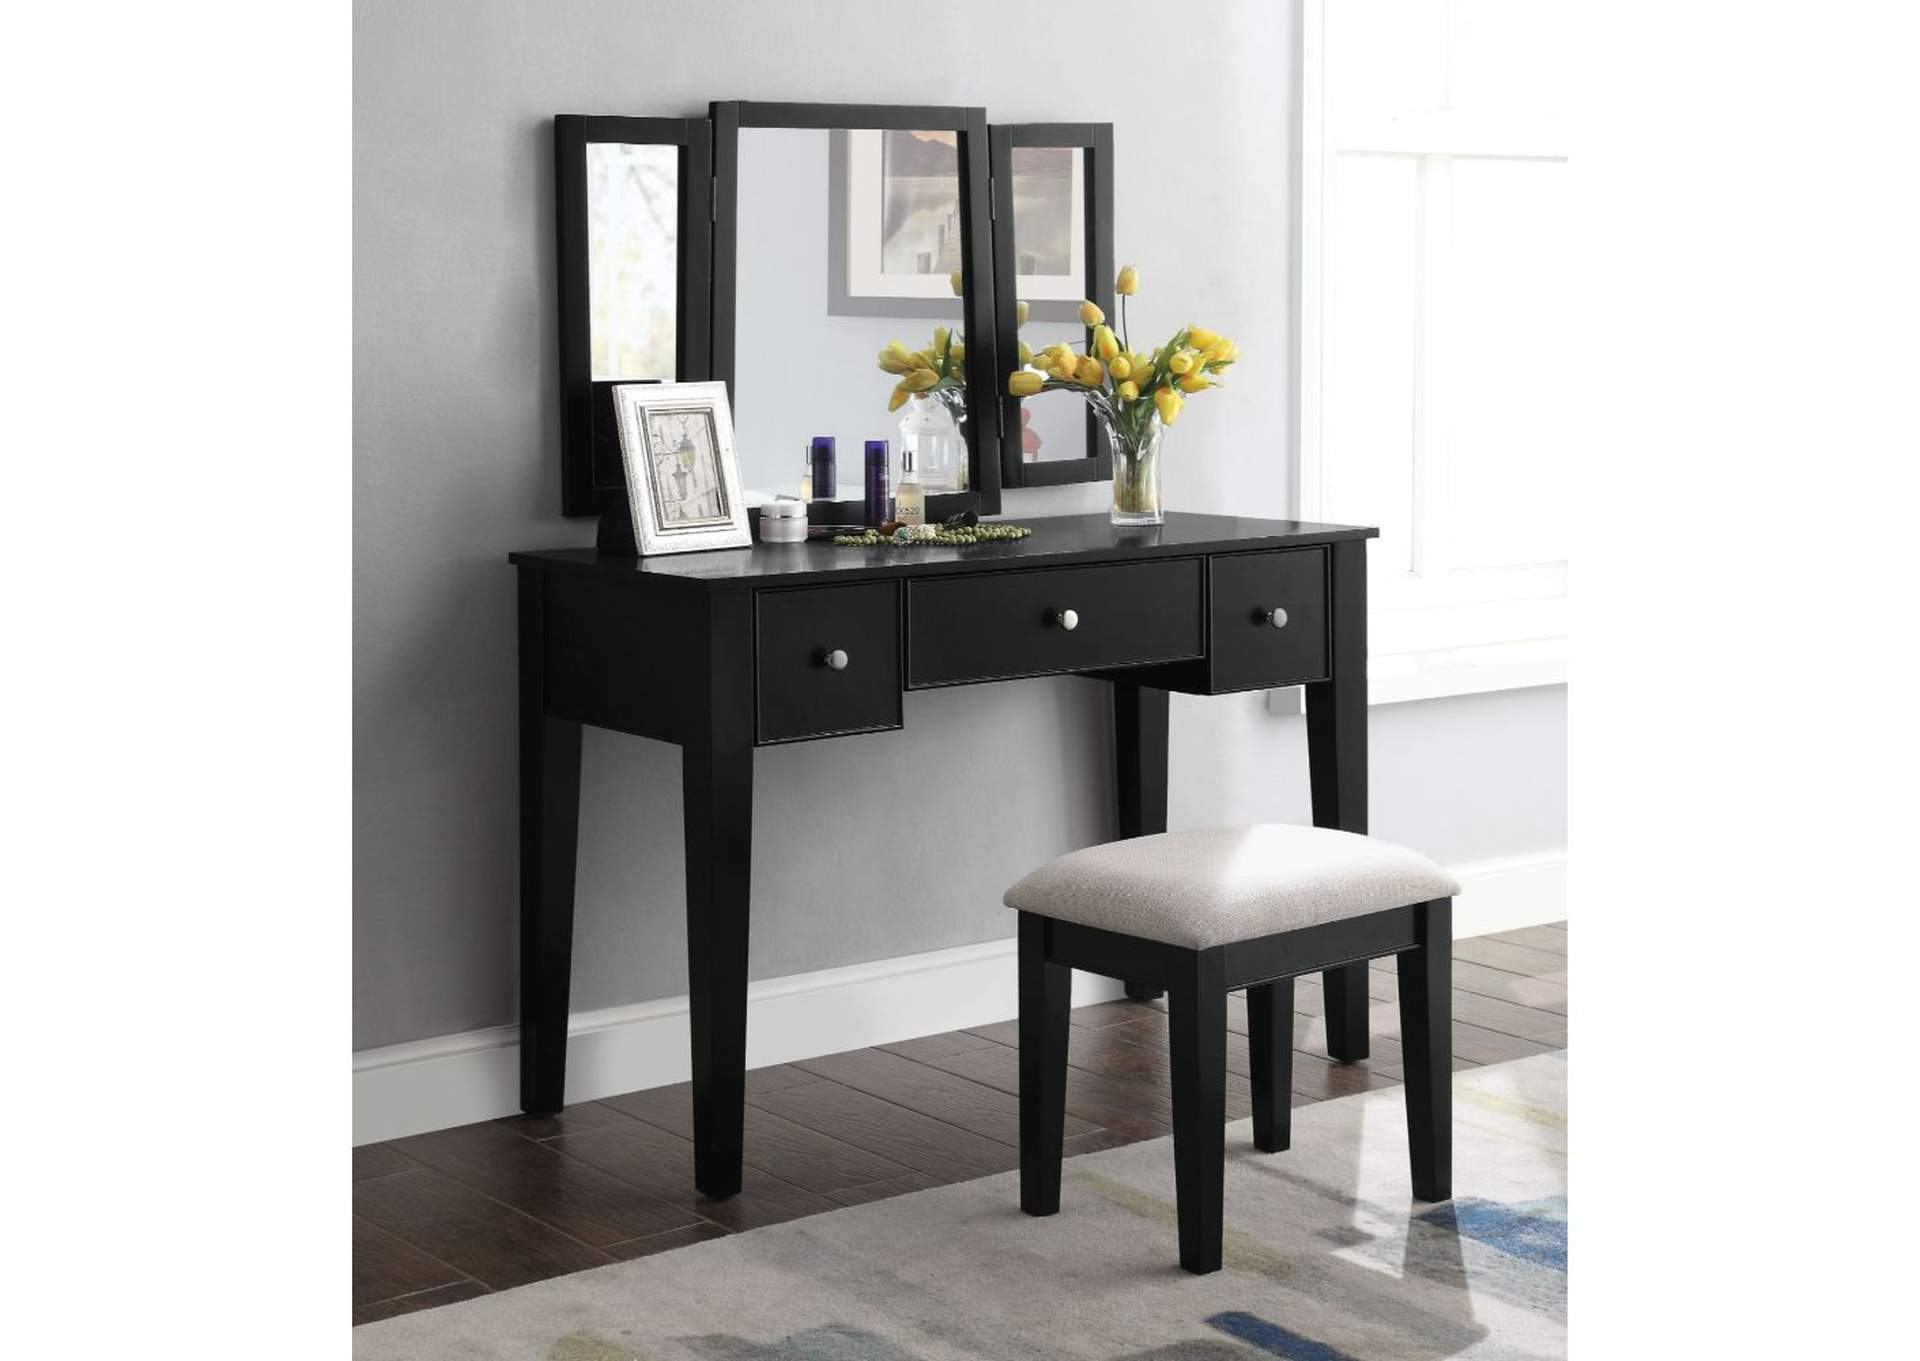 Severus Tan Fabric & Black Vanity Desk,Acme